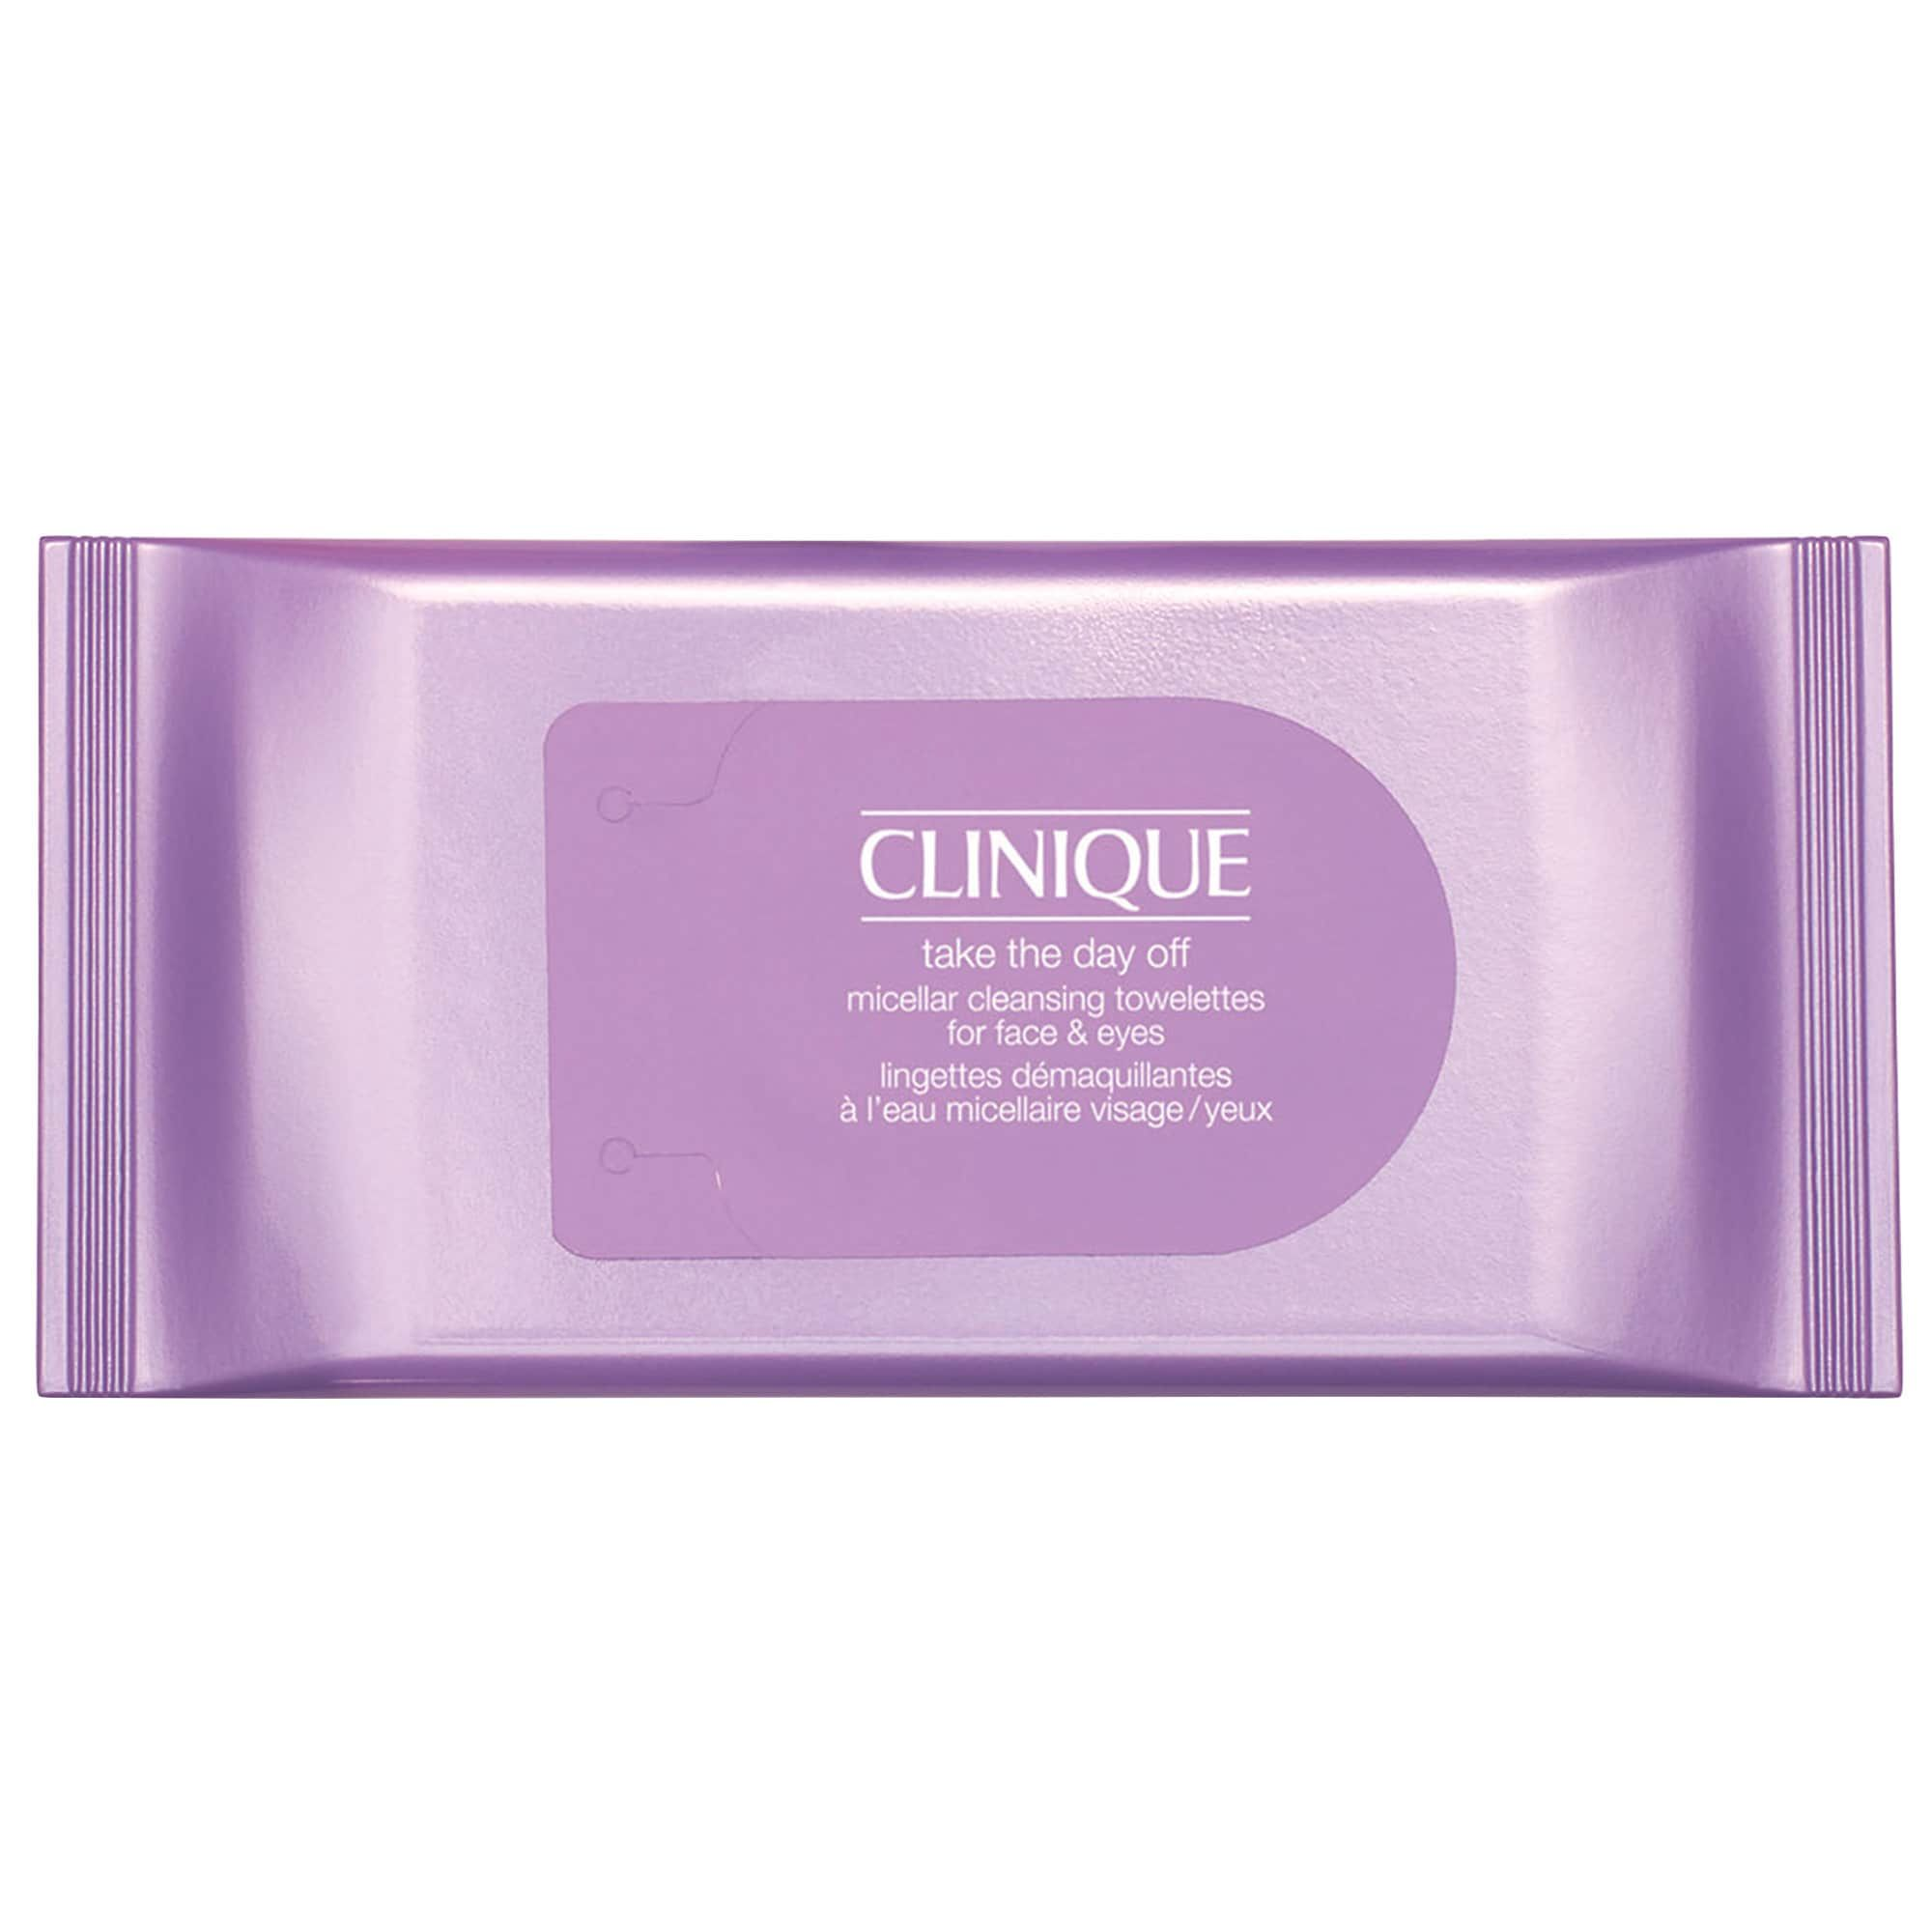 Take The Day Off Micellar Cleansing Towelettes for Face